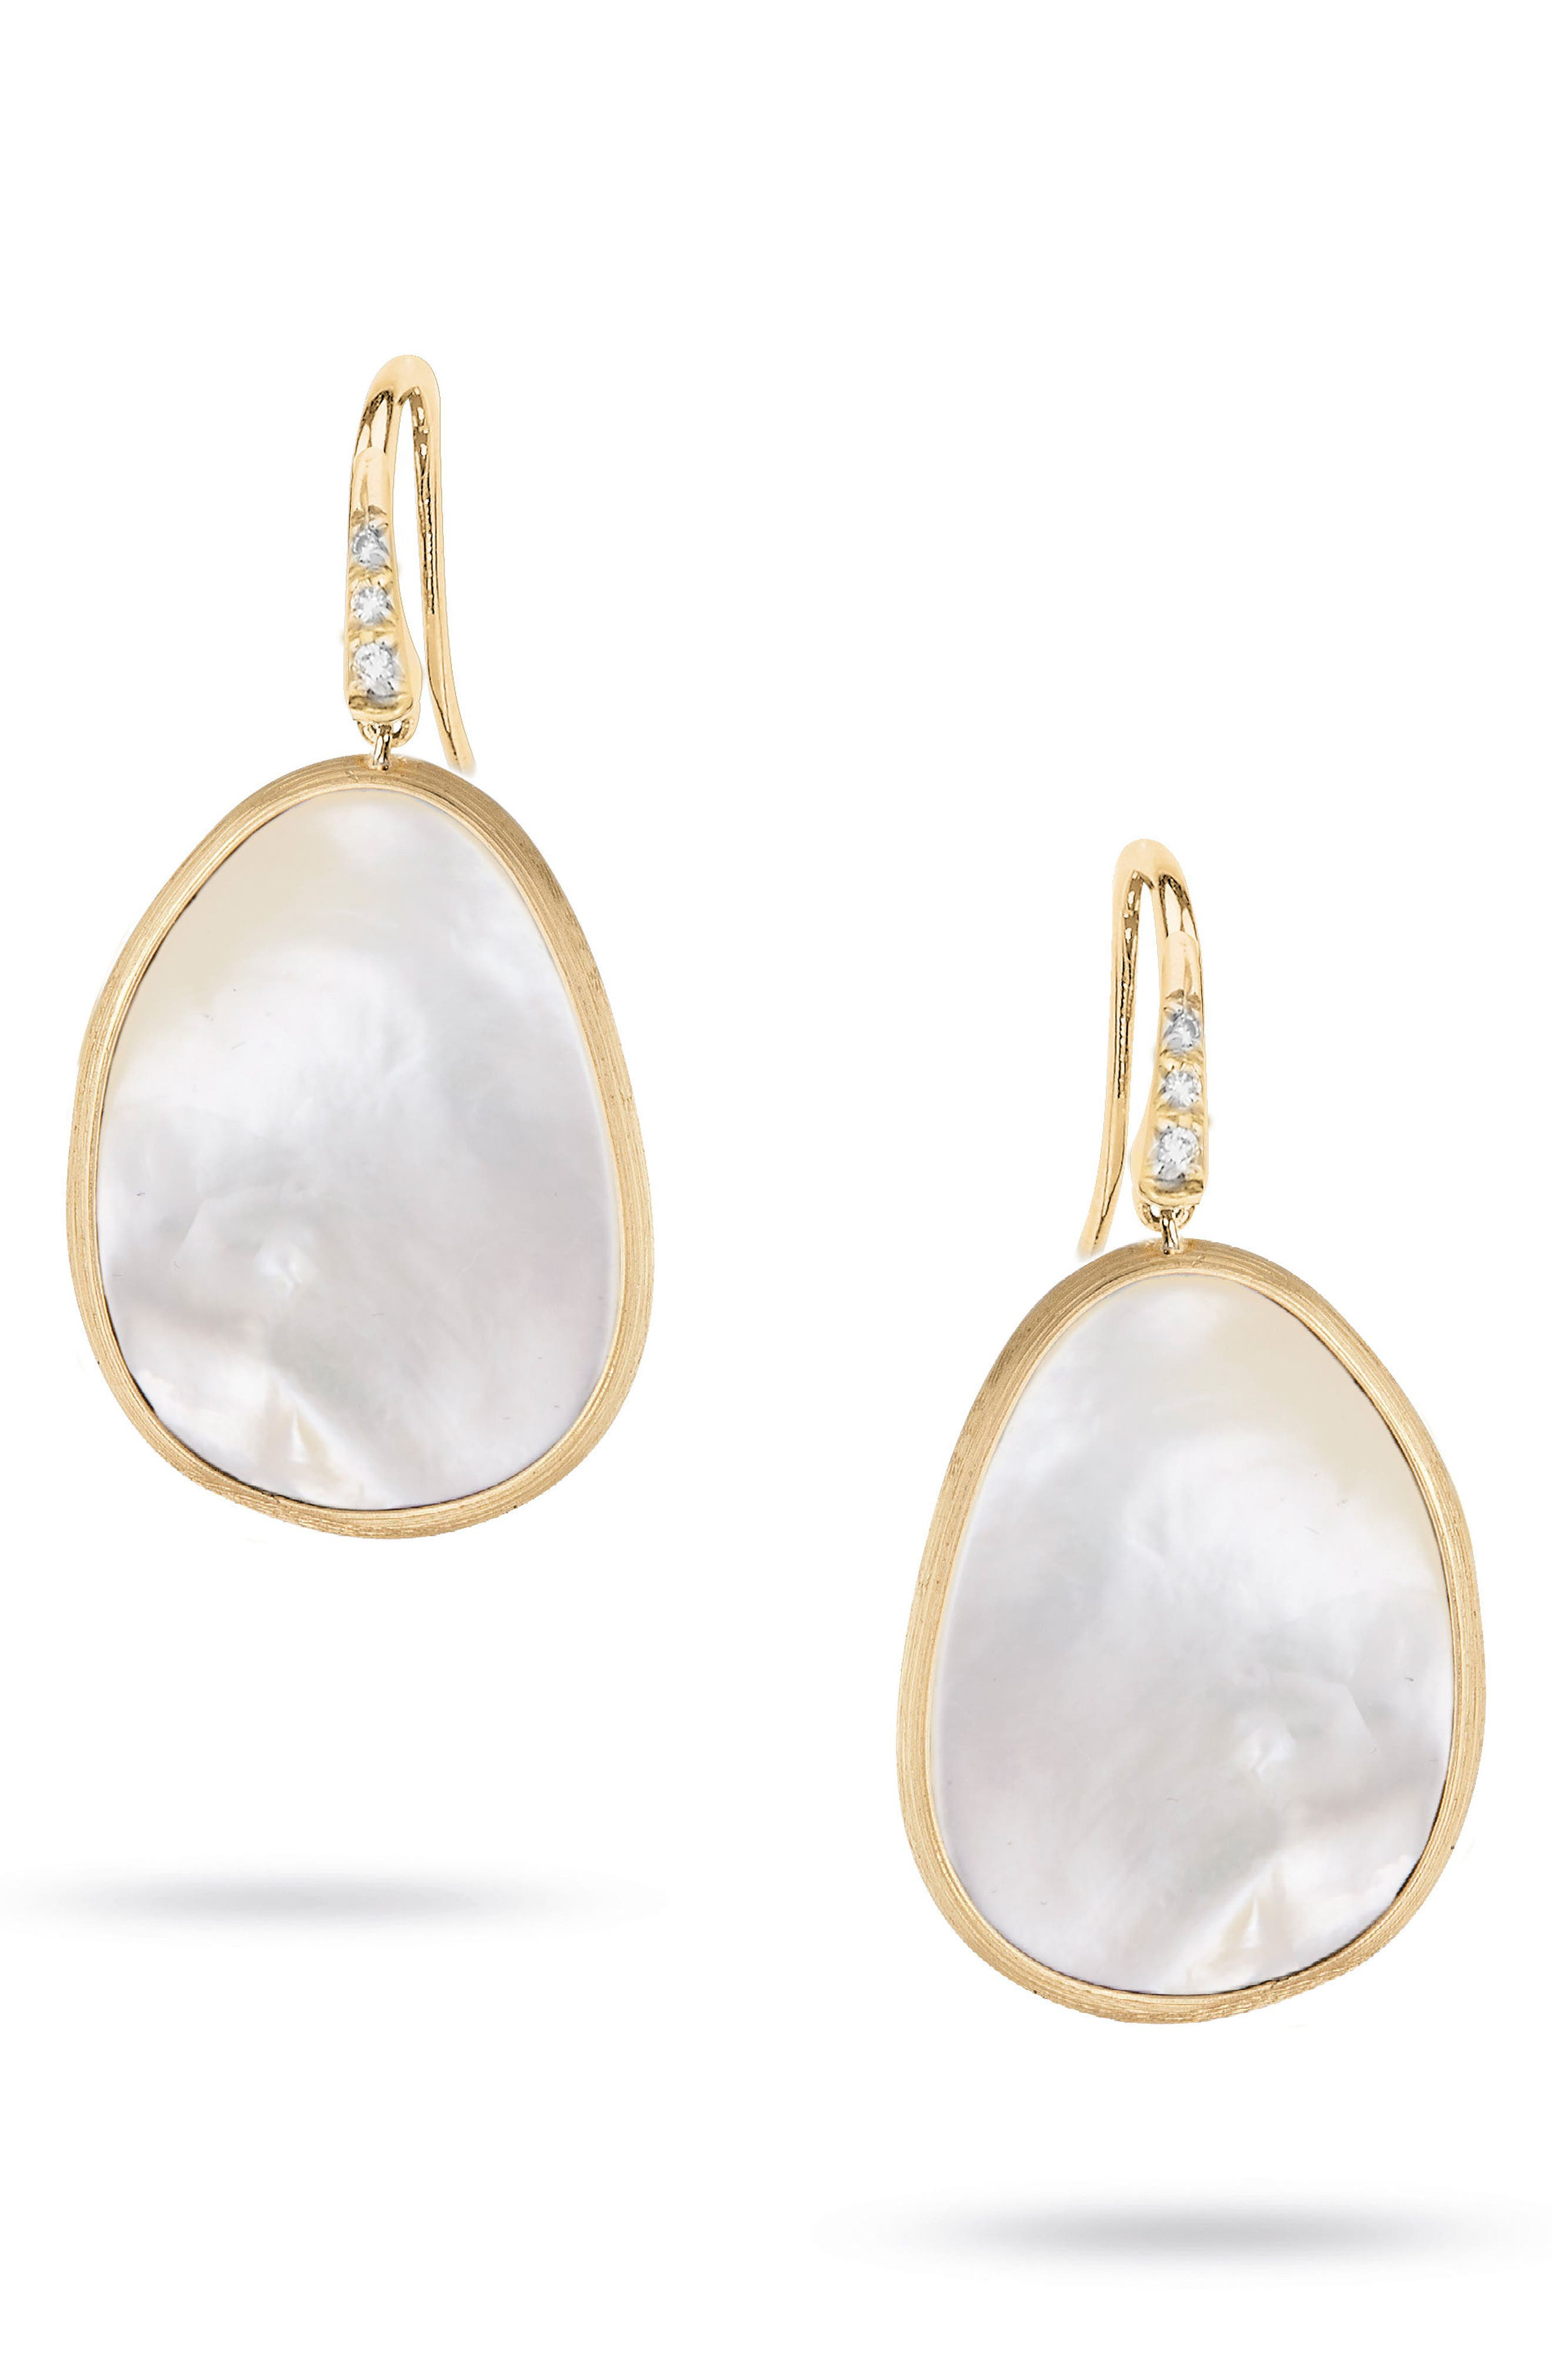 Lunaria Mother of Pearl Drop Earrings,                             Main thumbnail 1, color,                             Yellow Gold